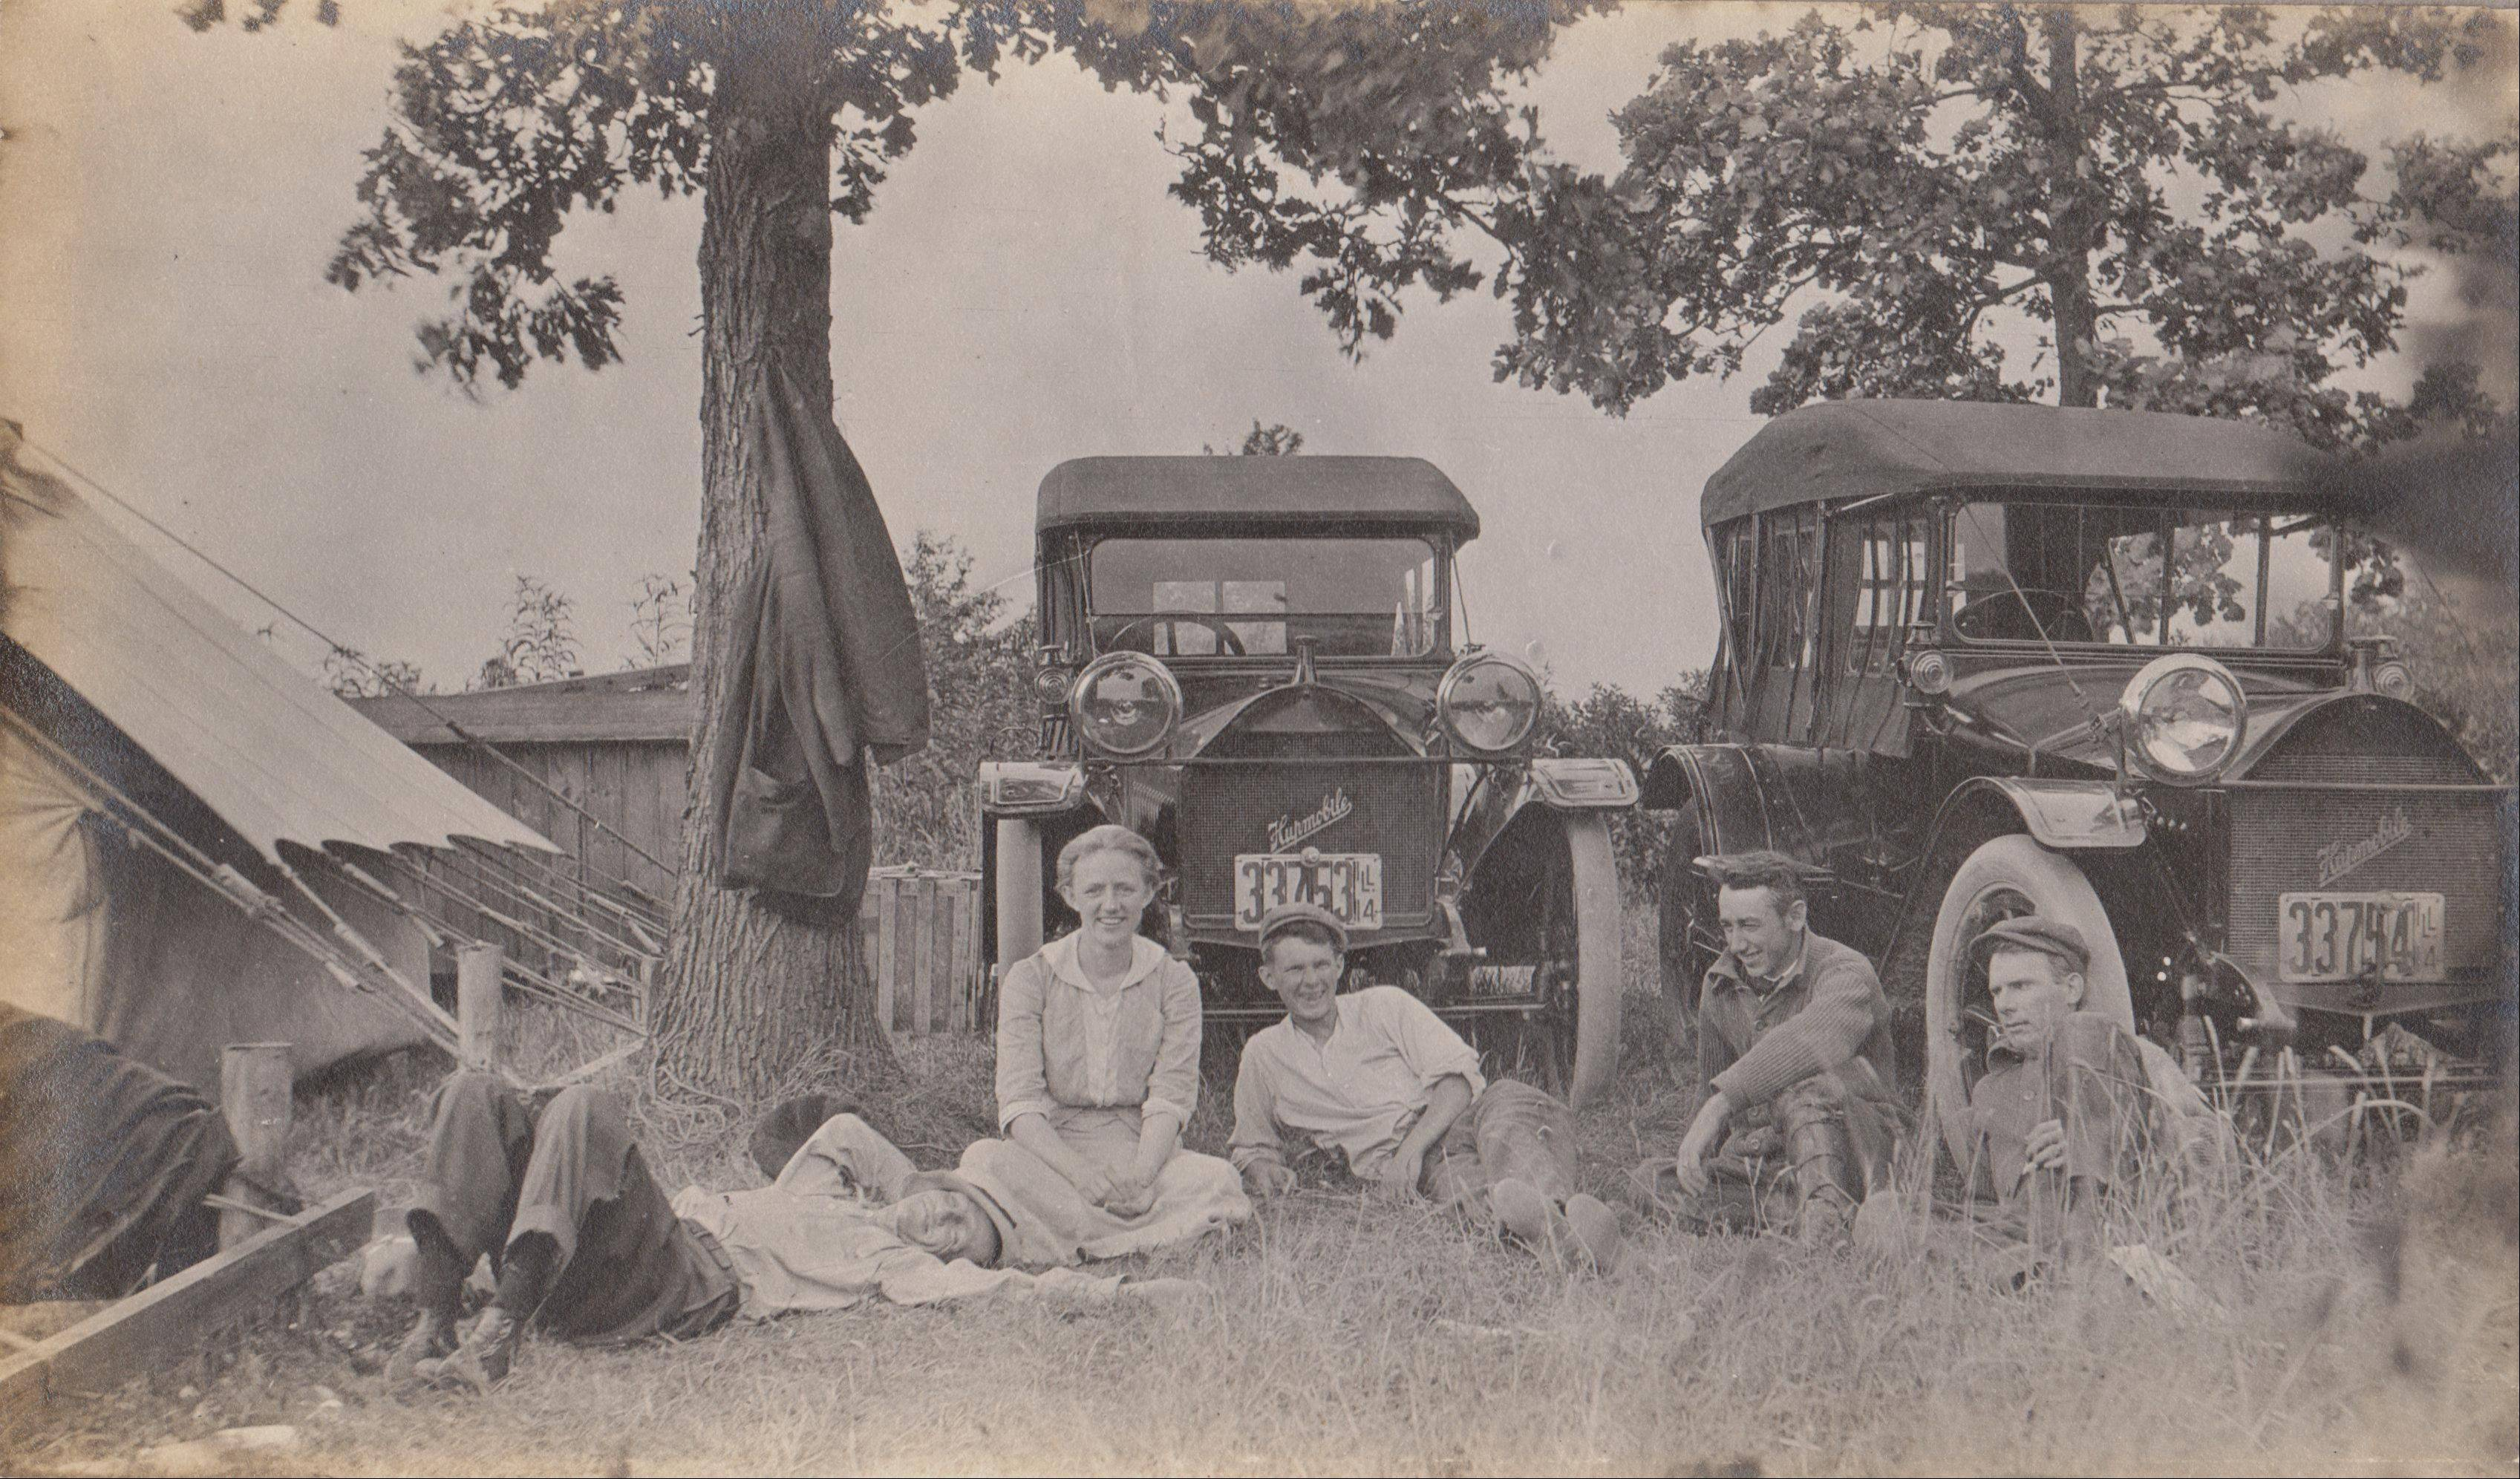 The Miller family of Union take a break during a motor camping trip in 1914. Travelers would bring their own camping gear as there weren't many hotels located along roadways.